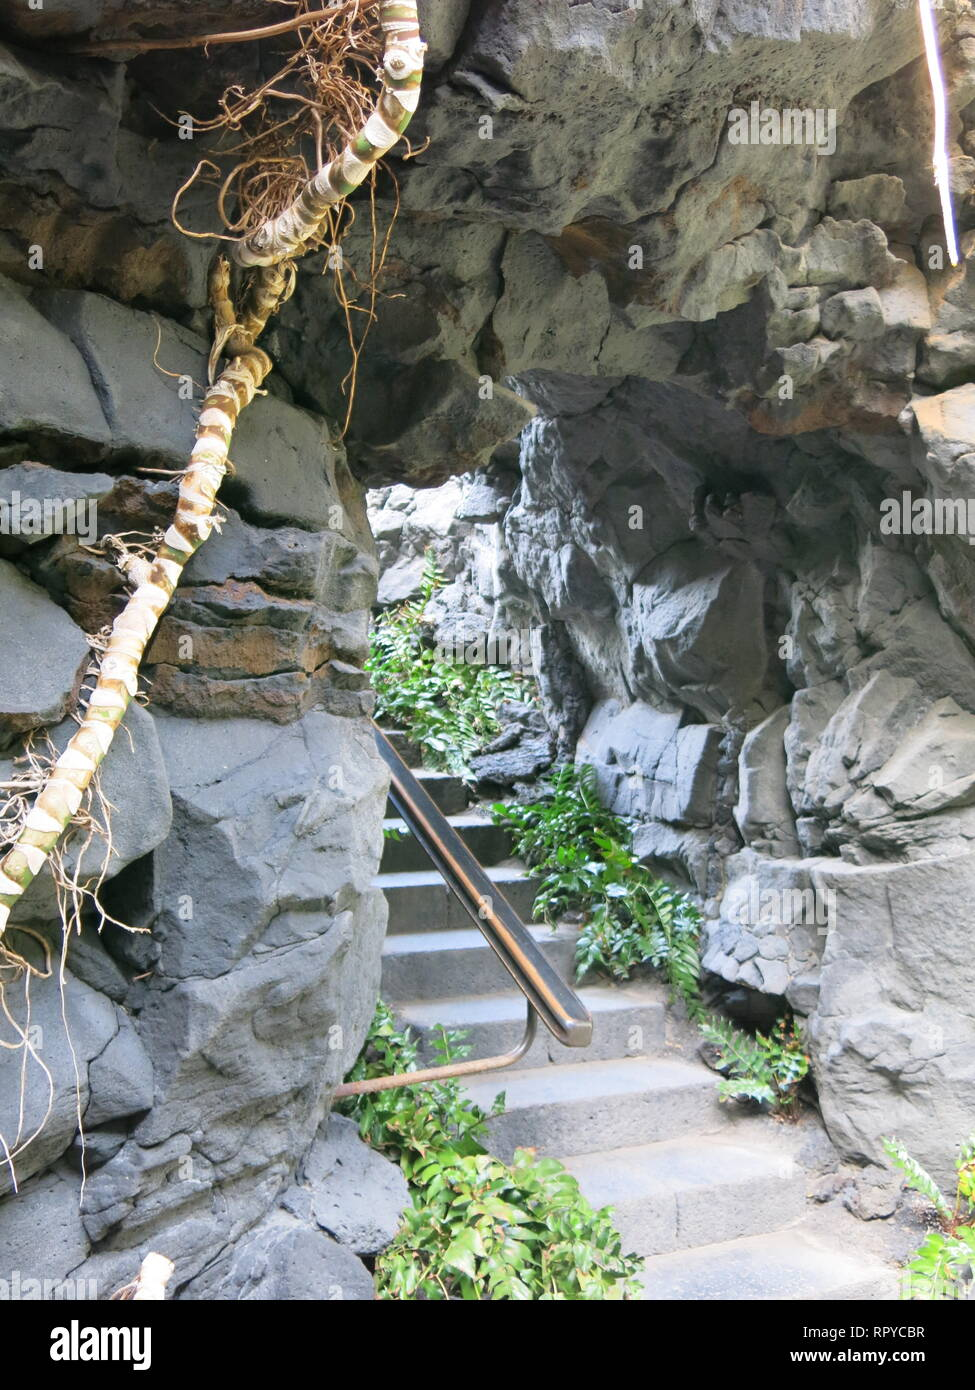 A staircase hewn from the basalt rock is a feature of the former home of Cesar Manrique, built in the lava bubbles after volcanic eruption. - Stock Image